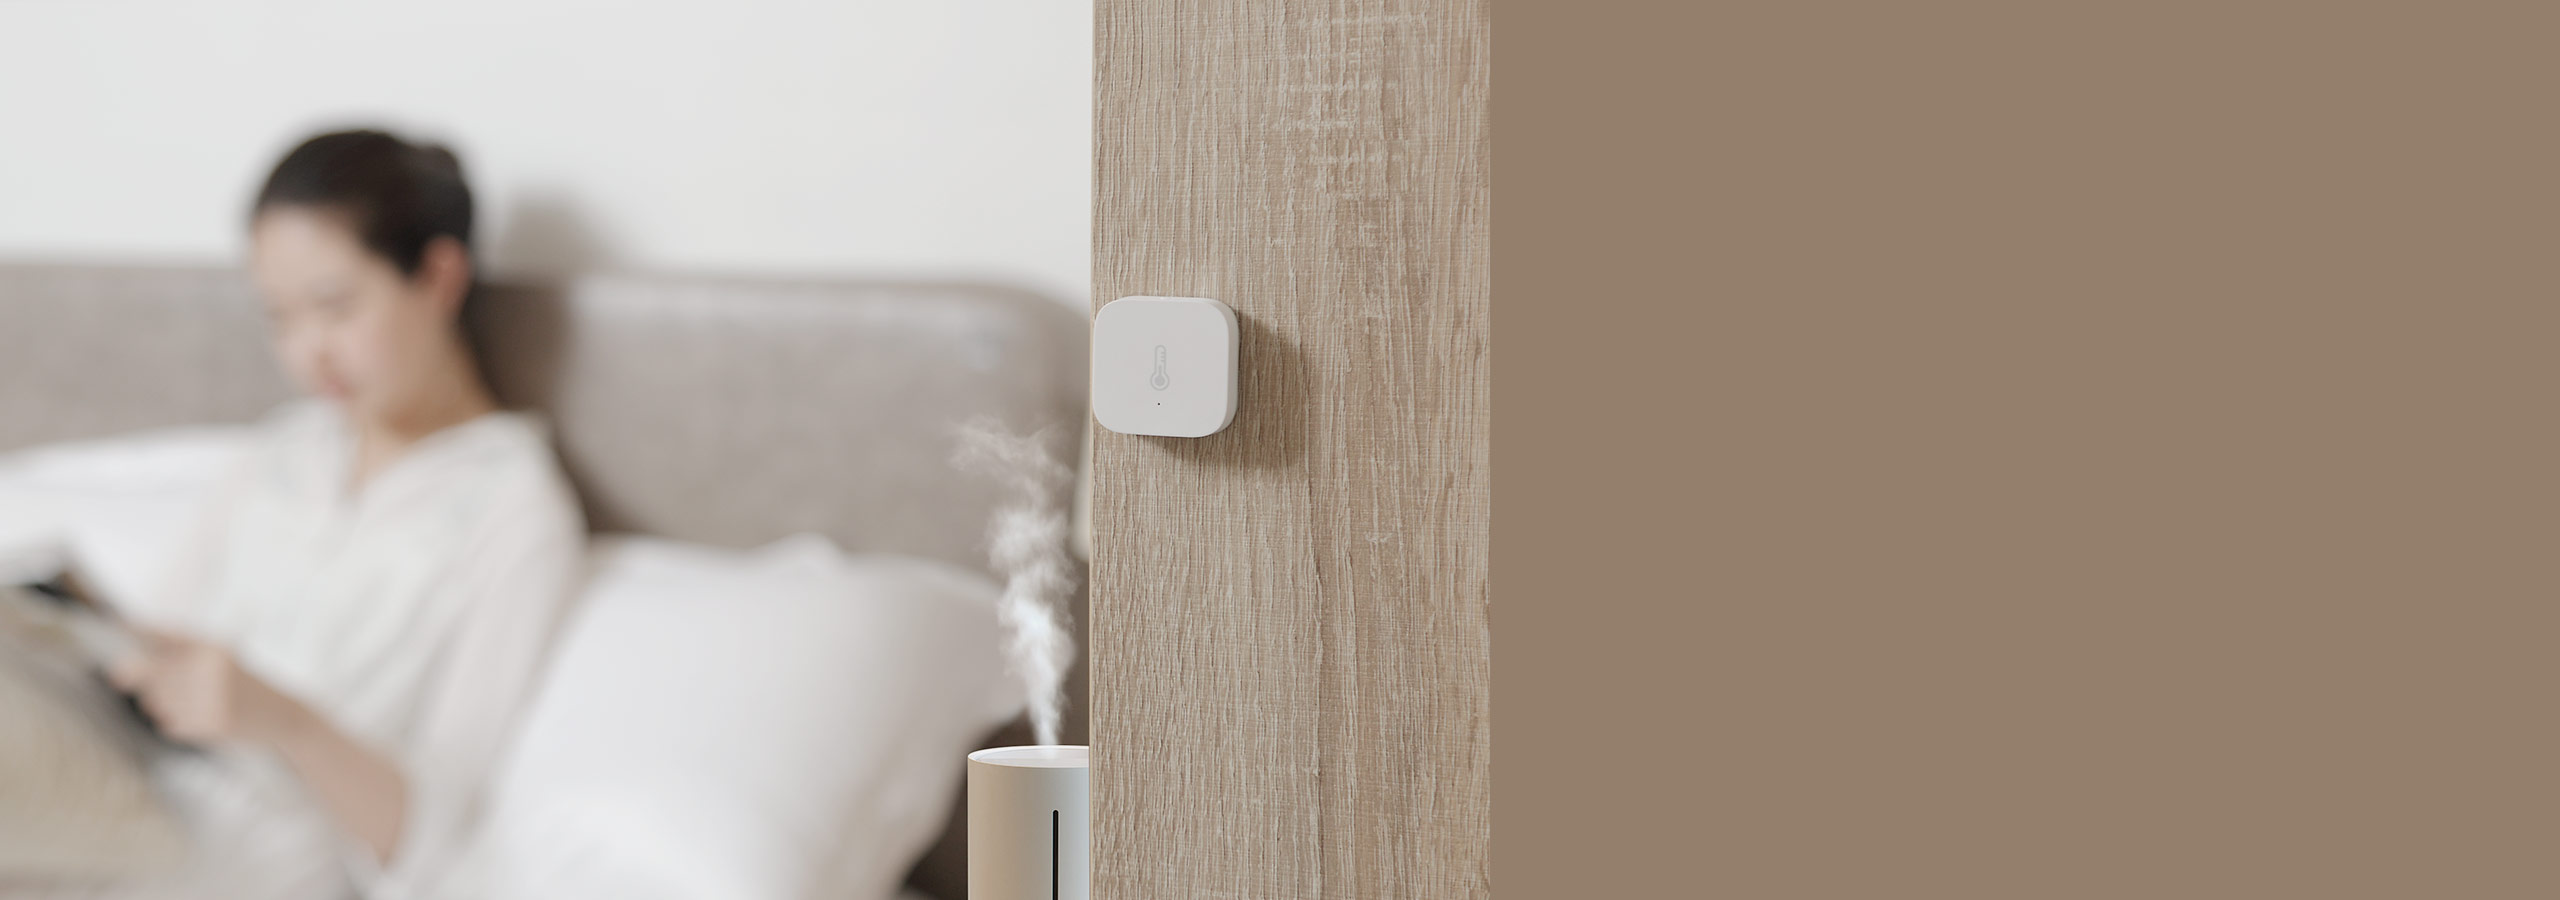 Smart humidity and temperature control with aqara gateway, smart plug and temperature humidity sensor